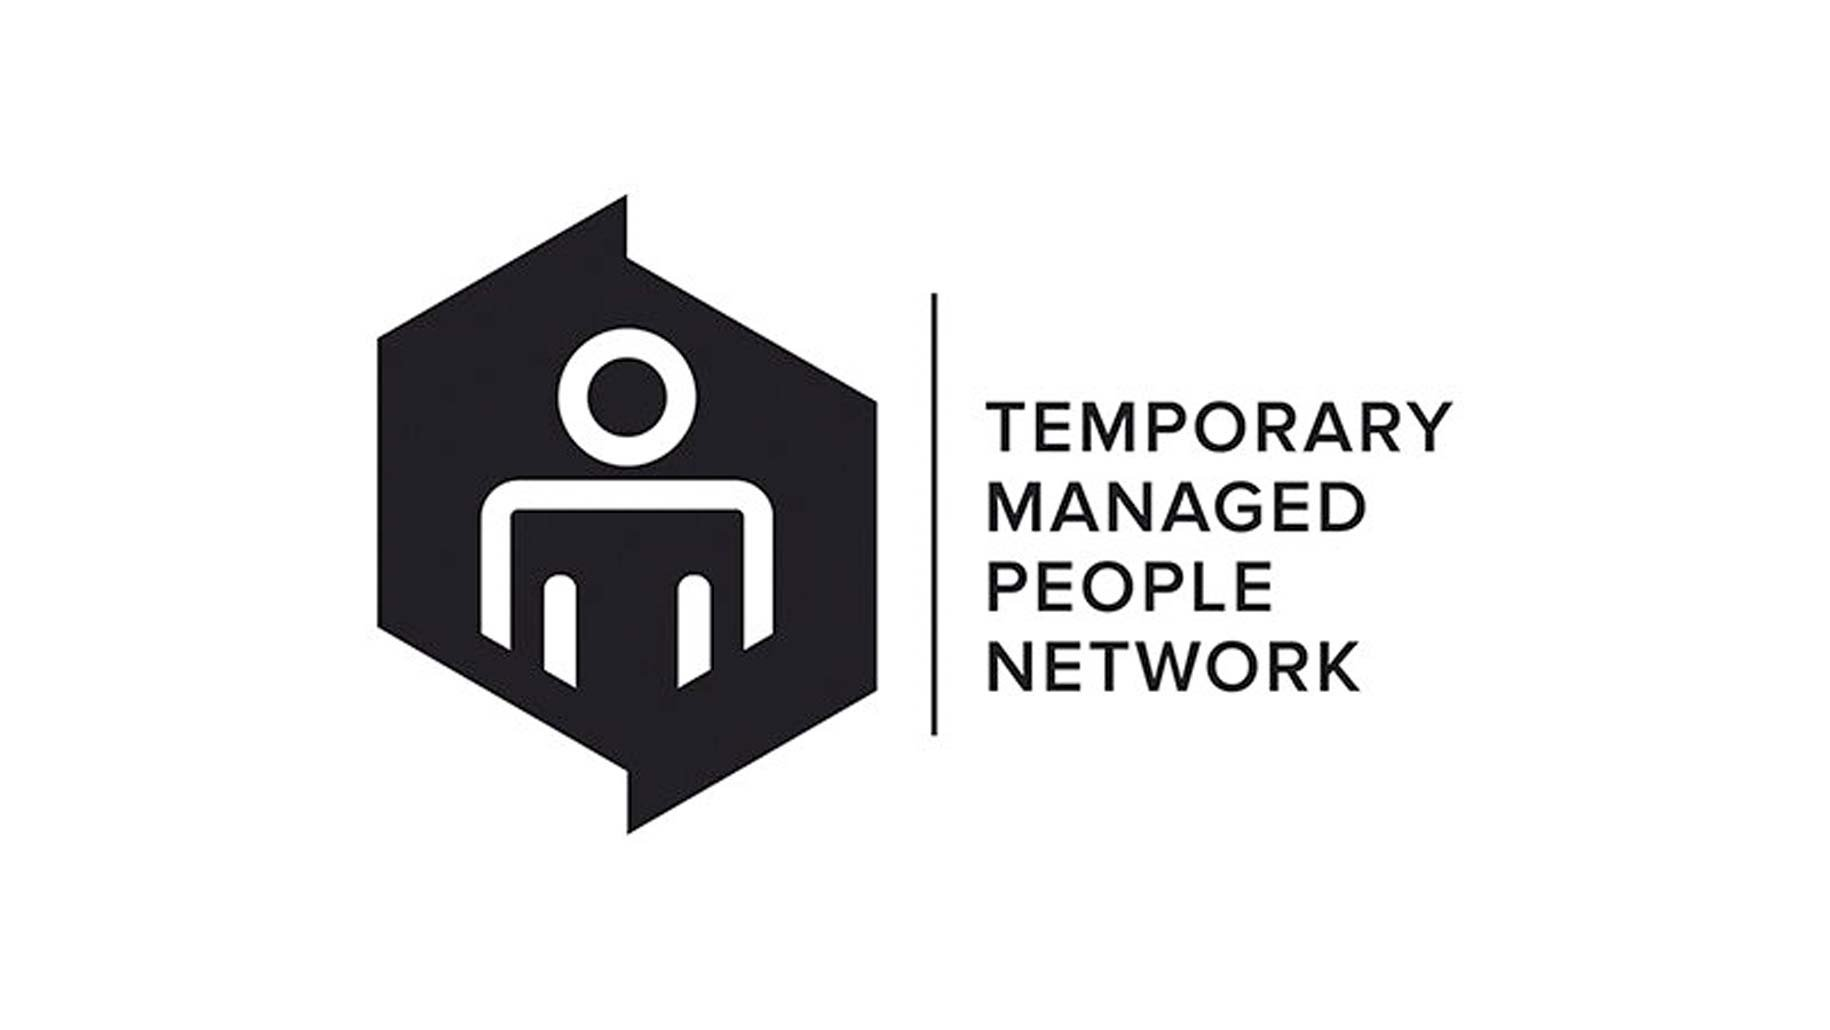 fabian-wolfram-tmpn-temporary-managed-people-network-slide-001